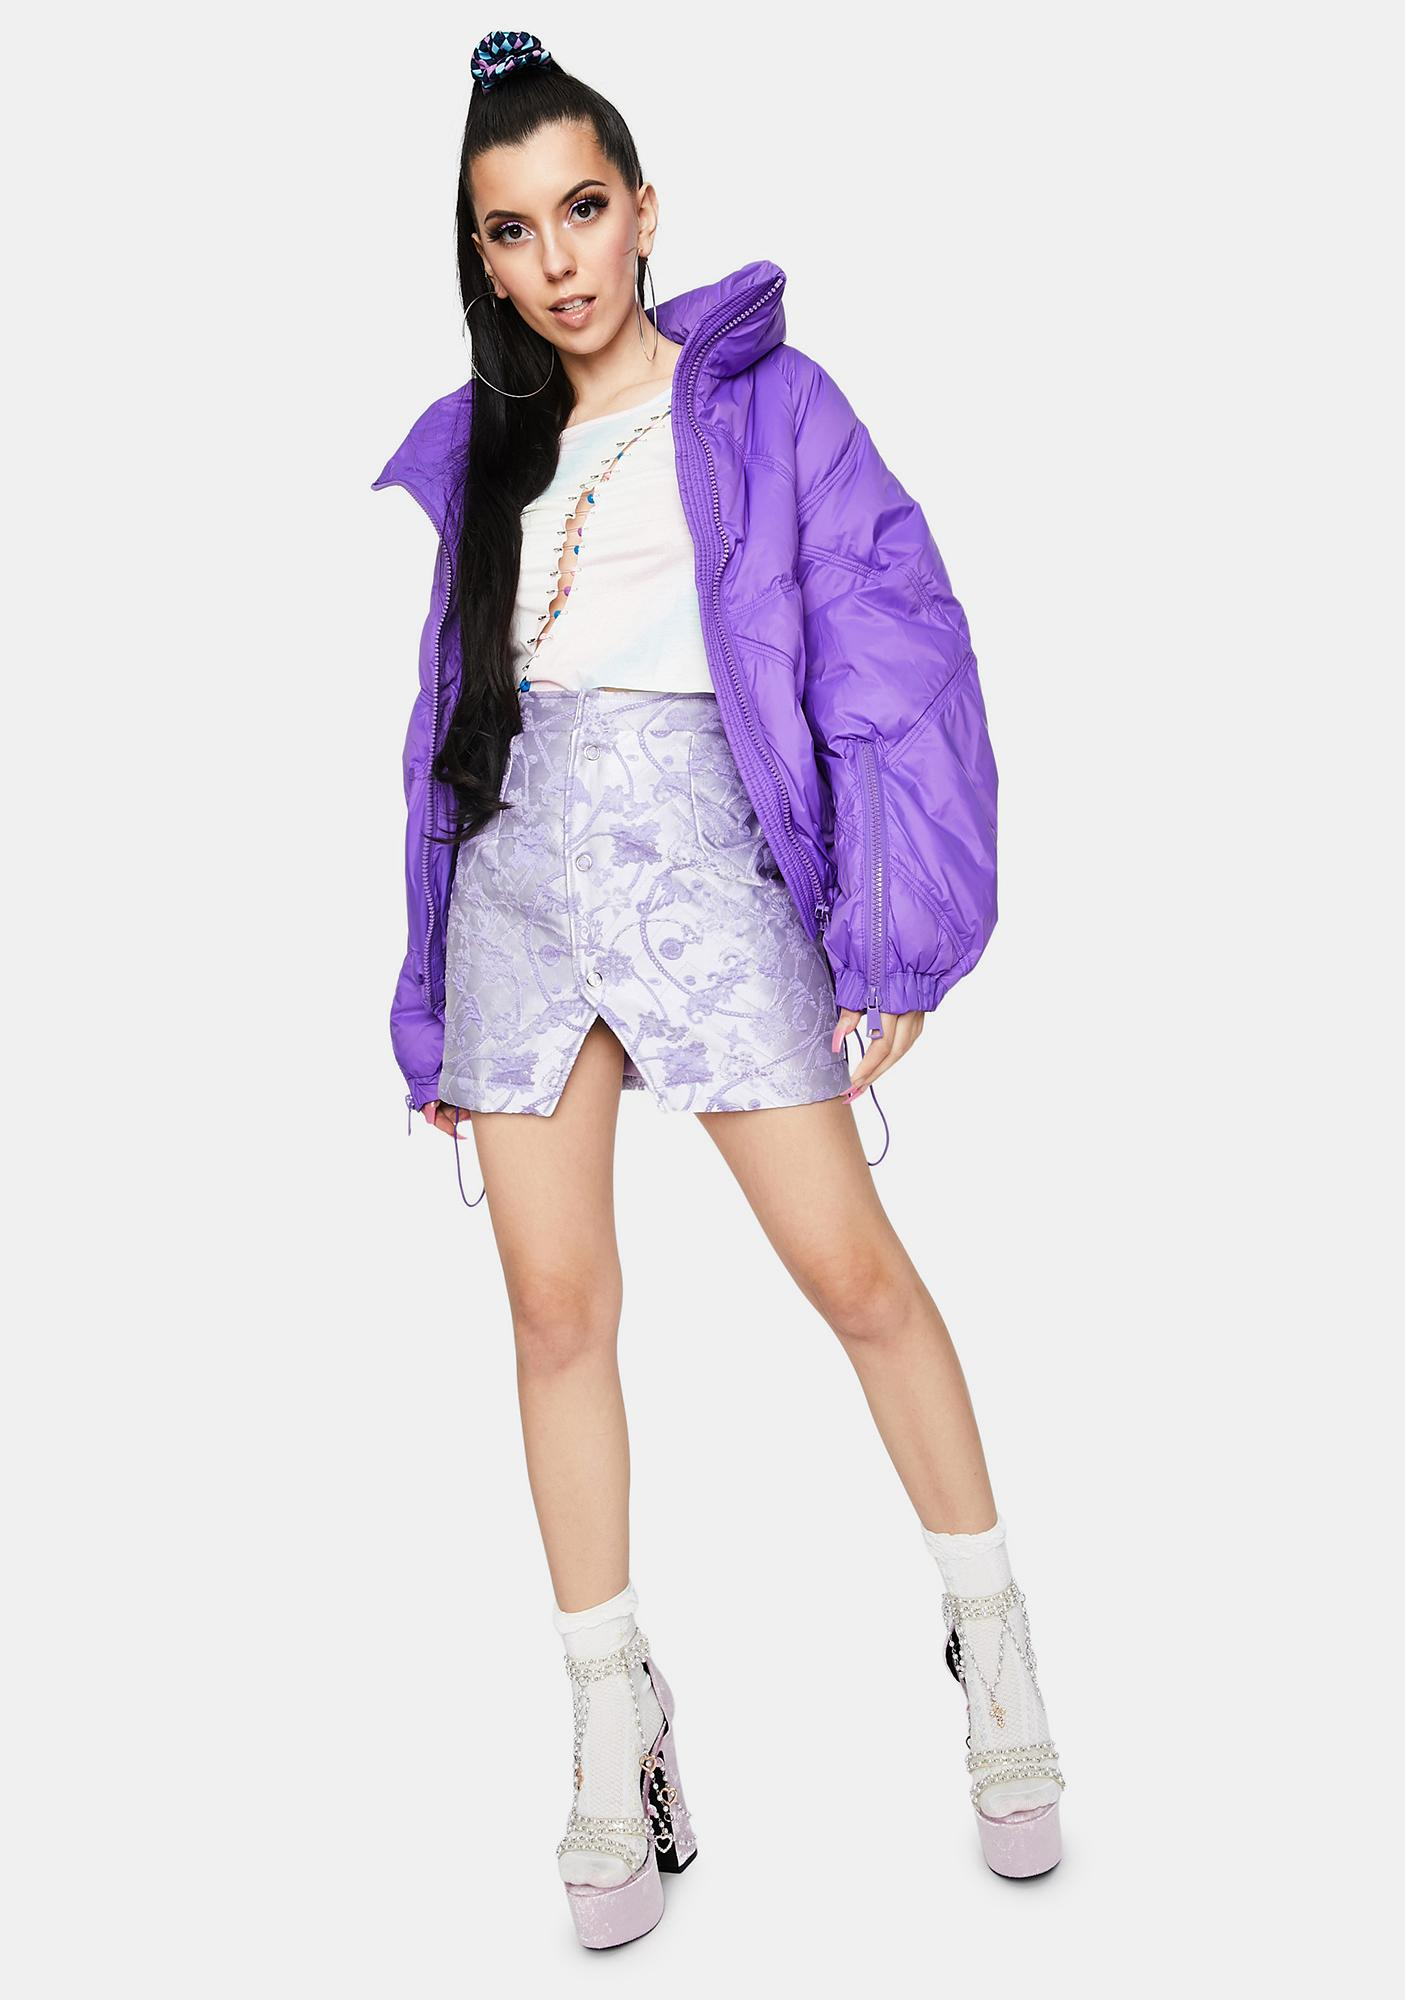 ZEMETA Purple Picky Chain Skirt